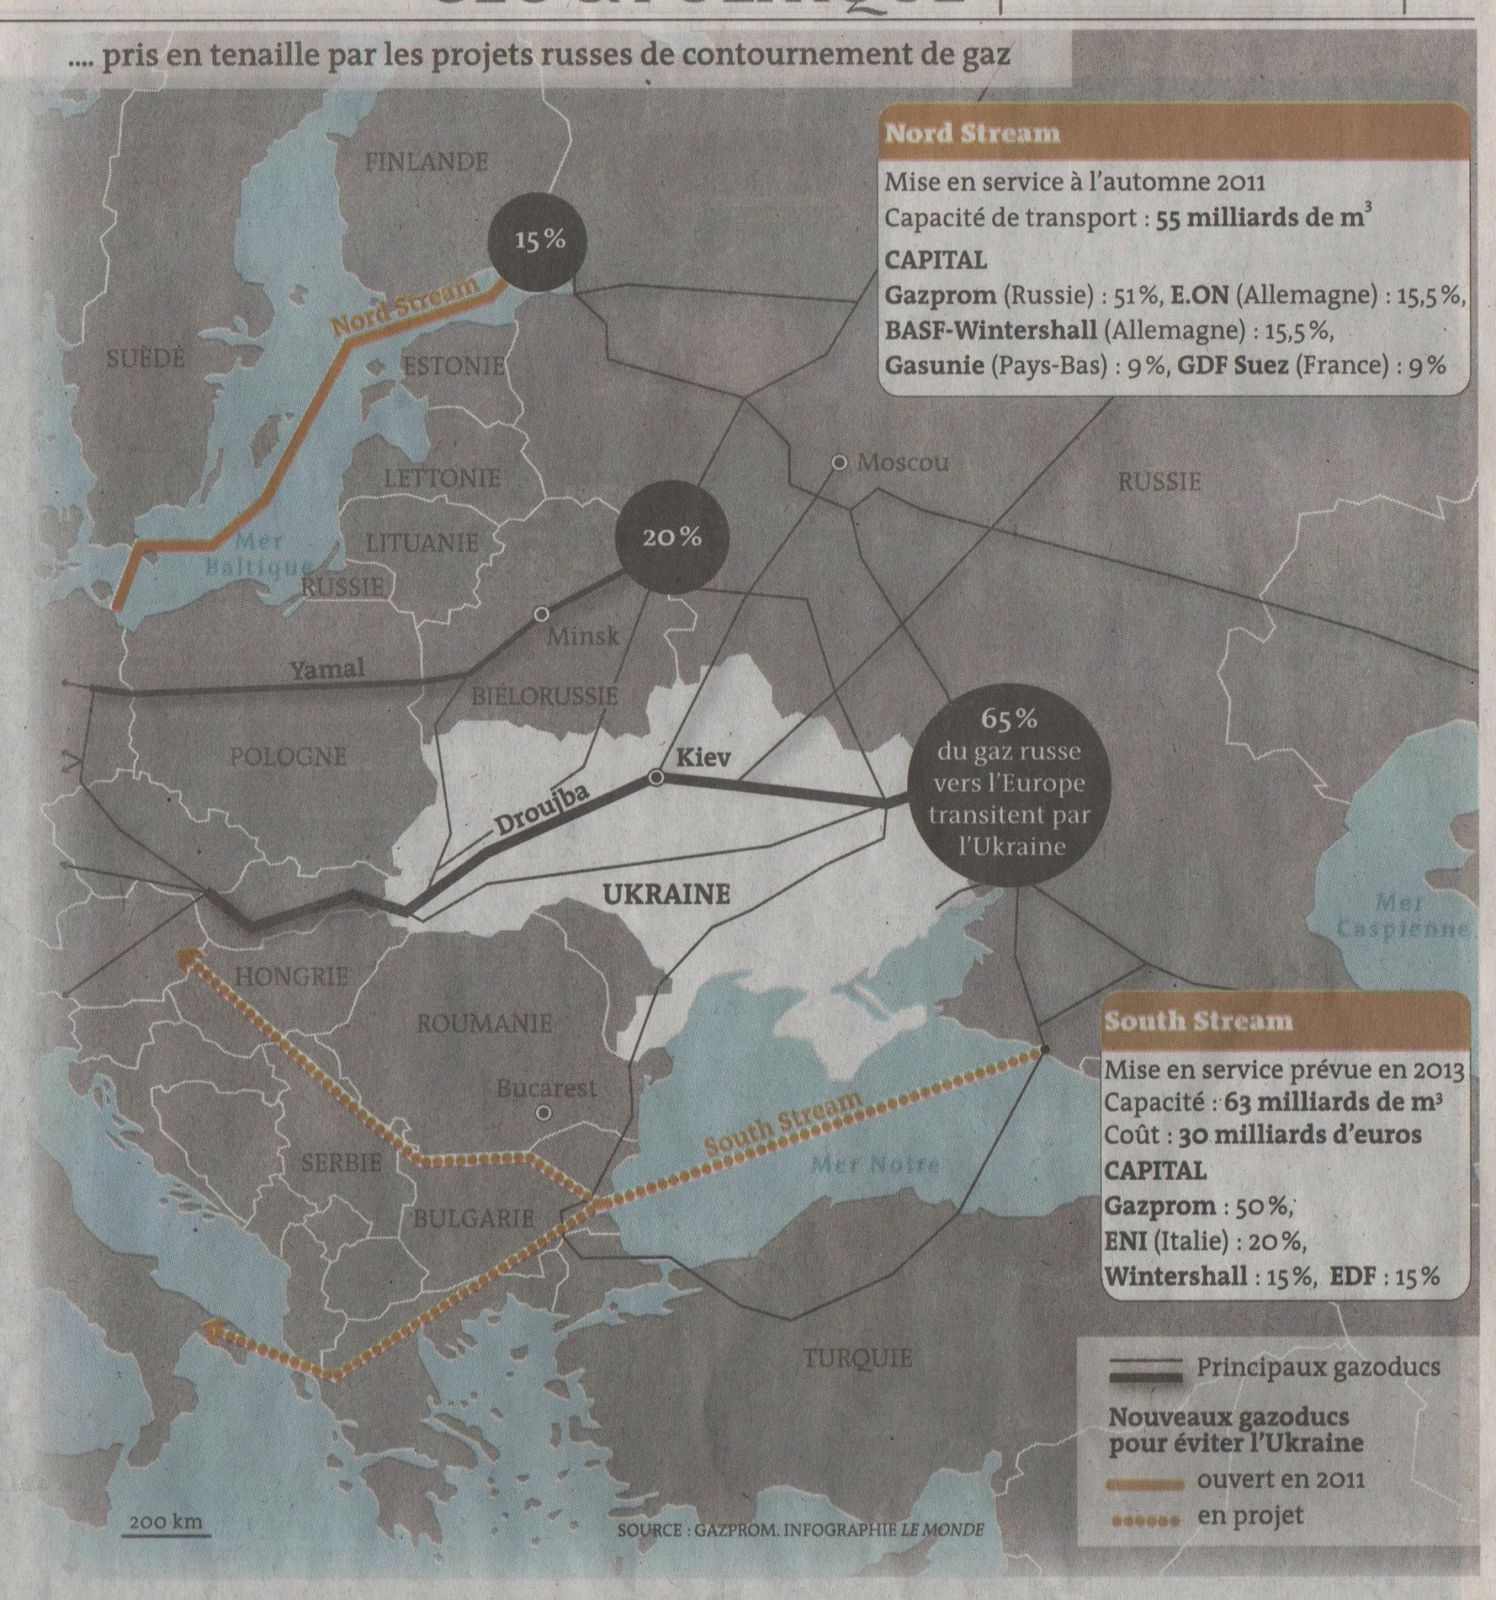 ukraine gaz - le monde 21.22.oct 2012